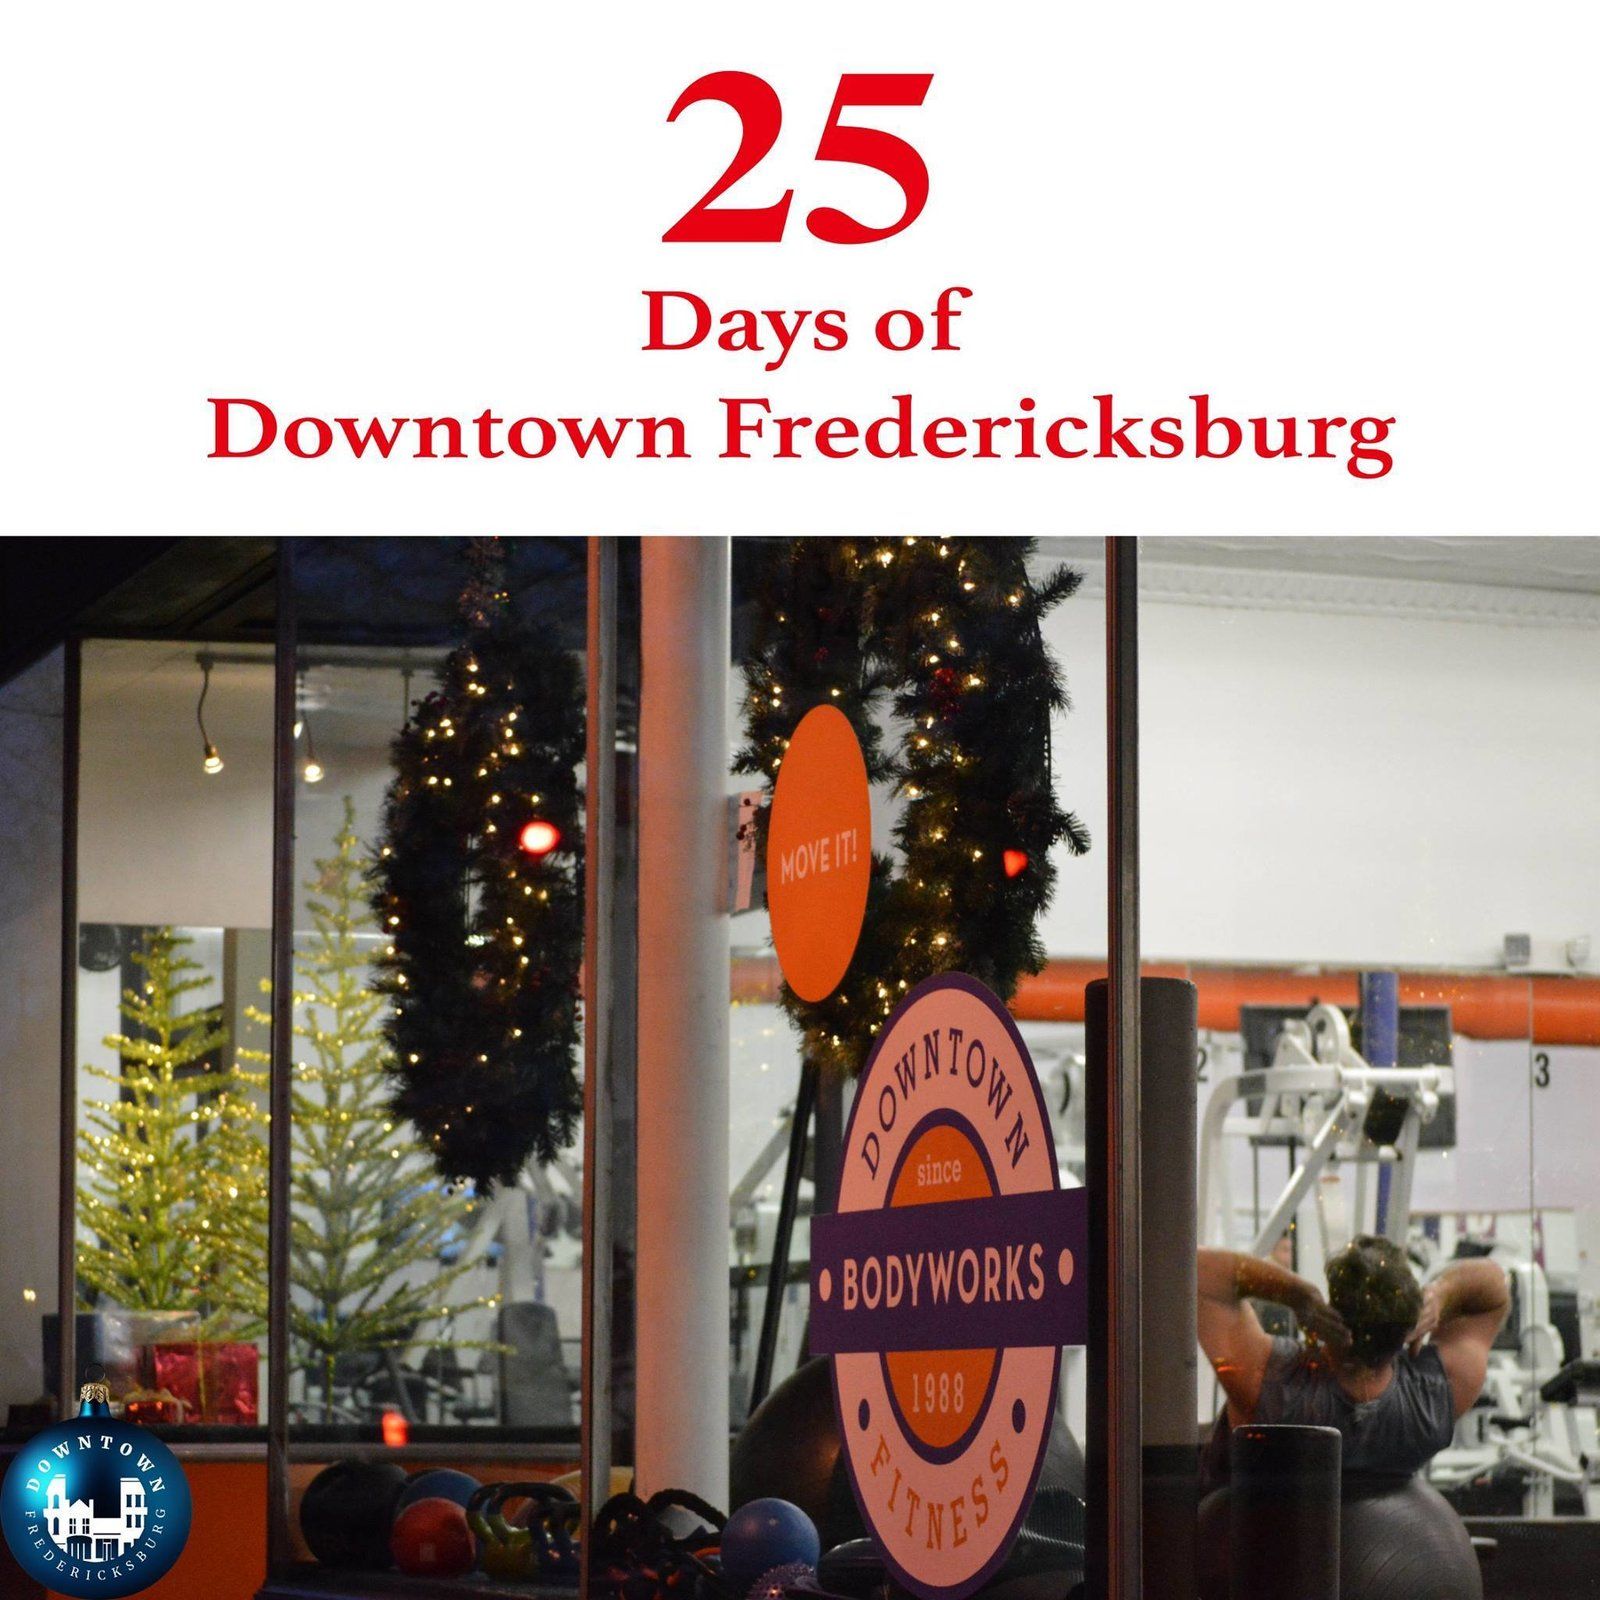 Gift Sixteen Health and happiness come with a gym membership to Bodyworks Downtown Athletic Club Fredericksburg. This gift won't go unappreciated. https://www.facebook.com/DowntownFredericksburg/  25 Days of Downtown Fredericksburg by Downtown Fredericksburg